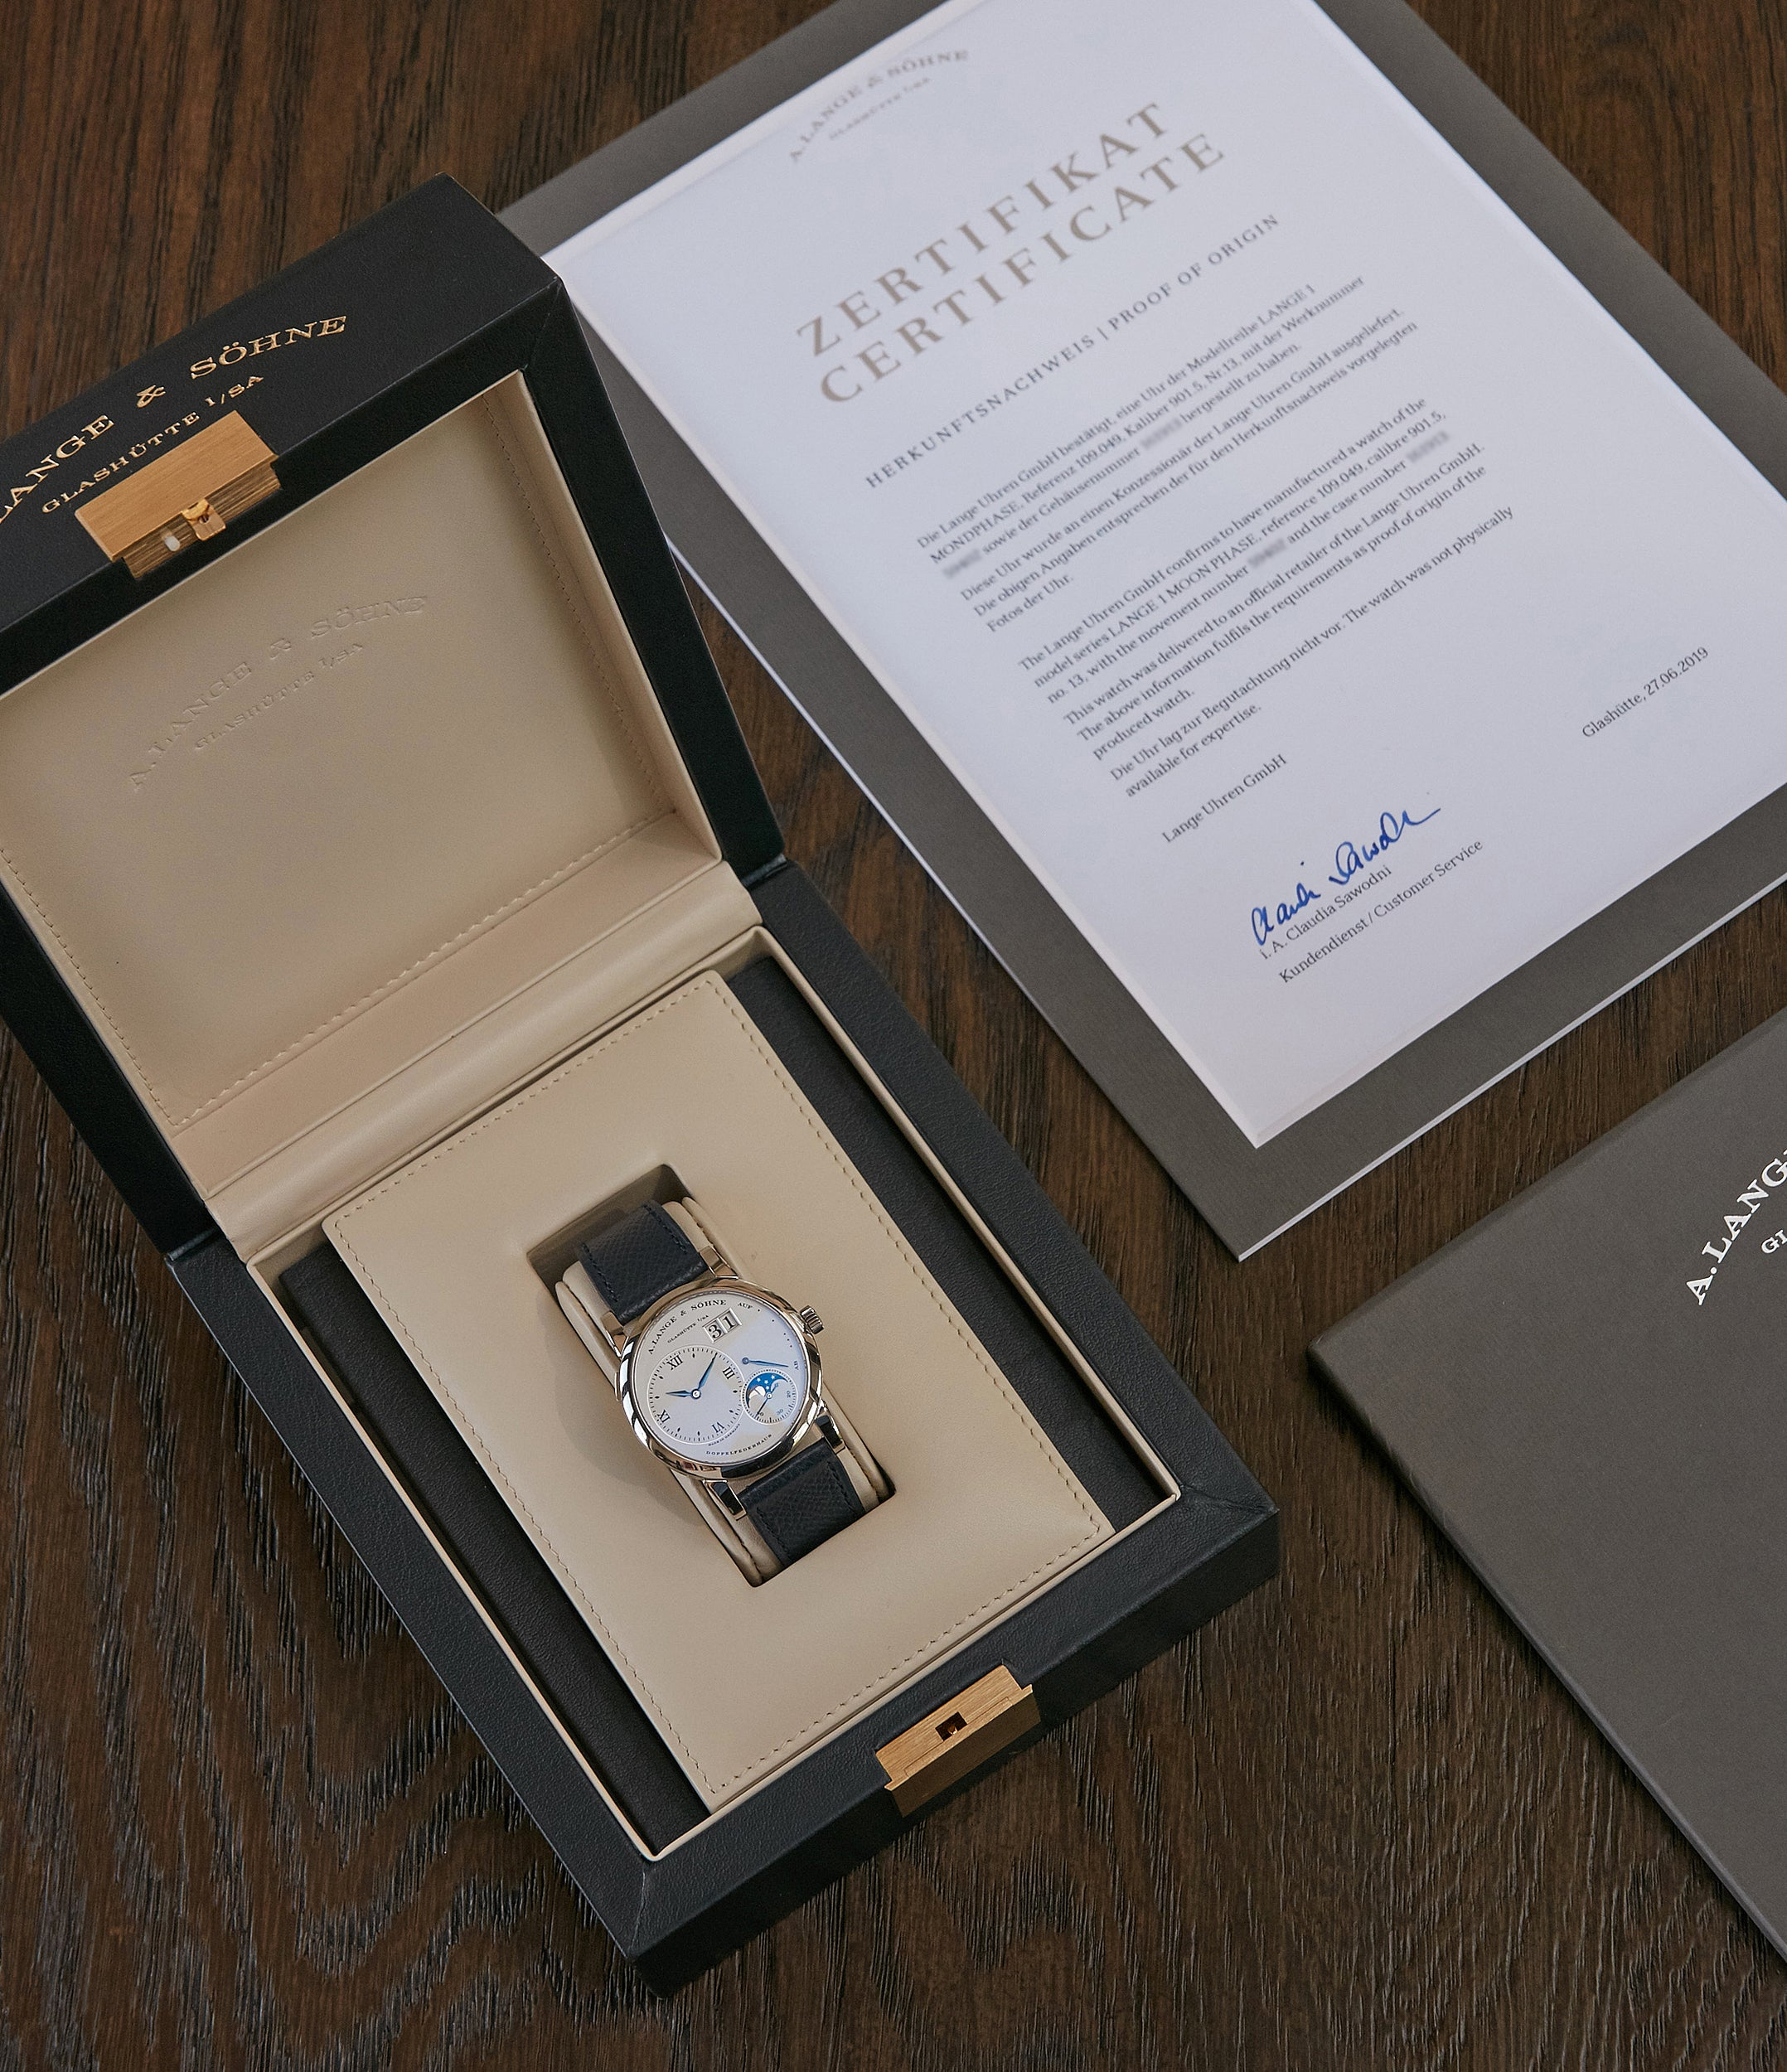 Lange 1 | Limited to 30 pieces